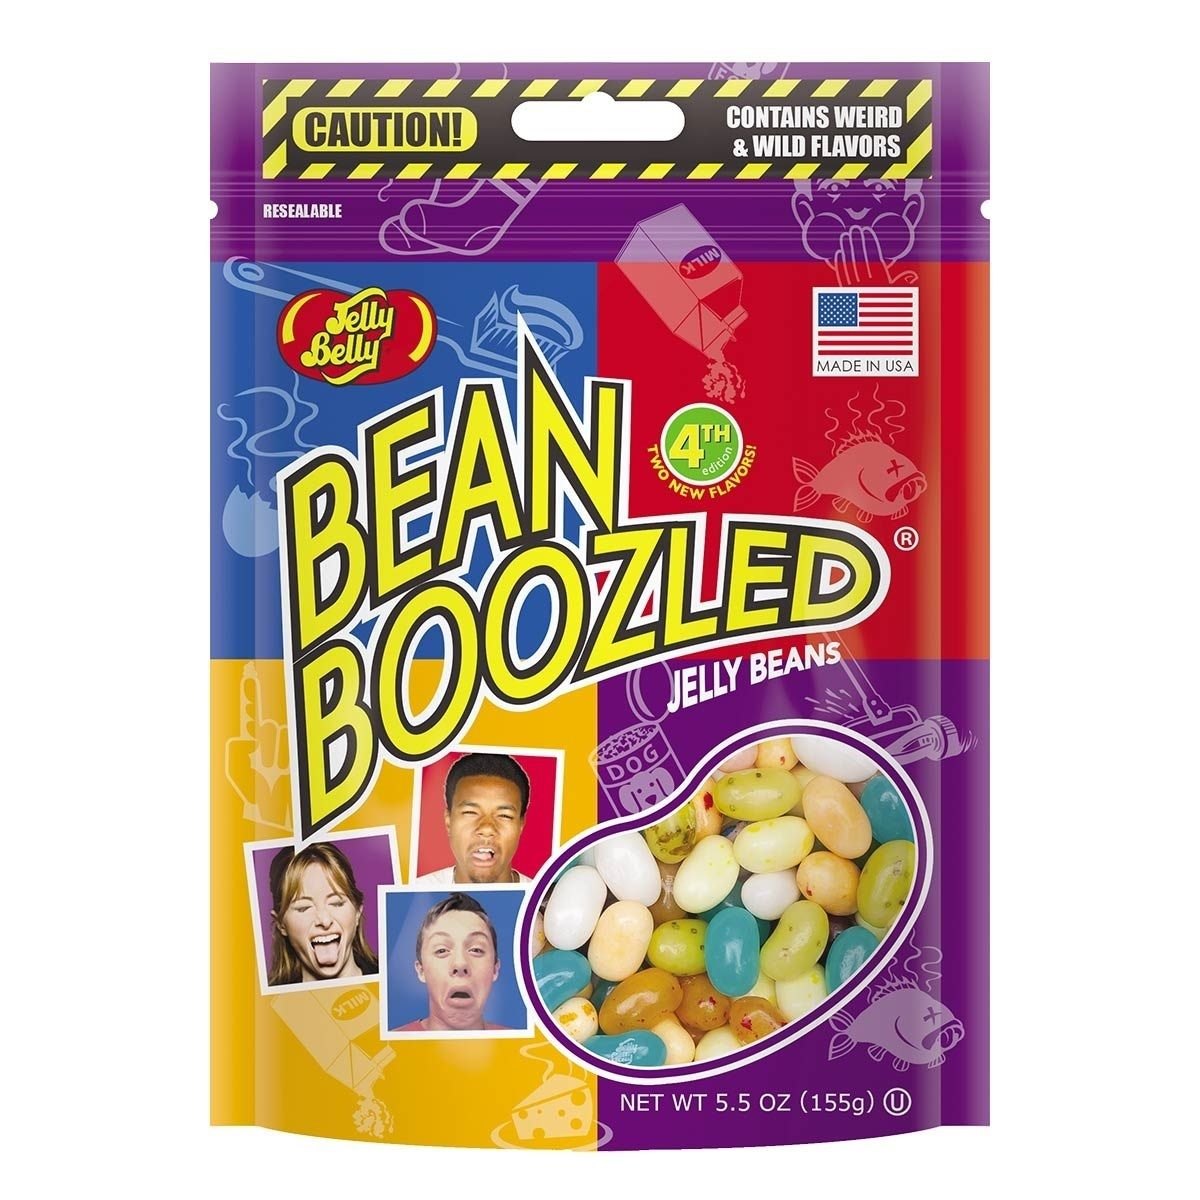 Jelly Belly BeanBoozled Jelly Beans 5.5 oz Pouch bag (4th edition) by Jelly Belly